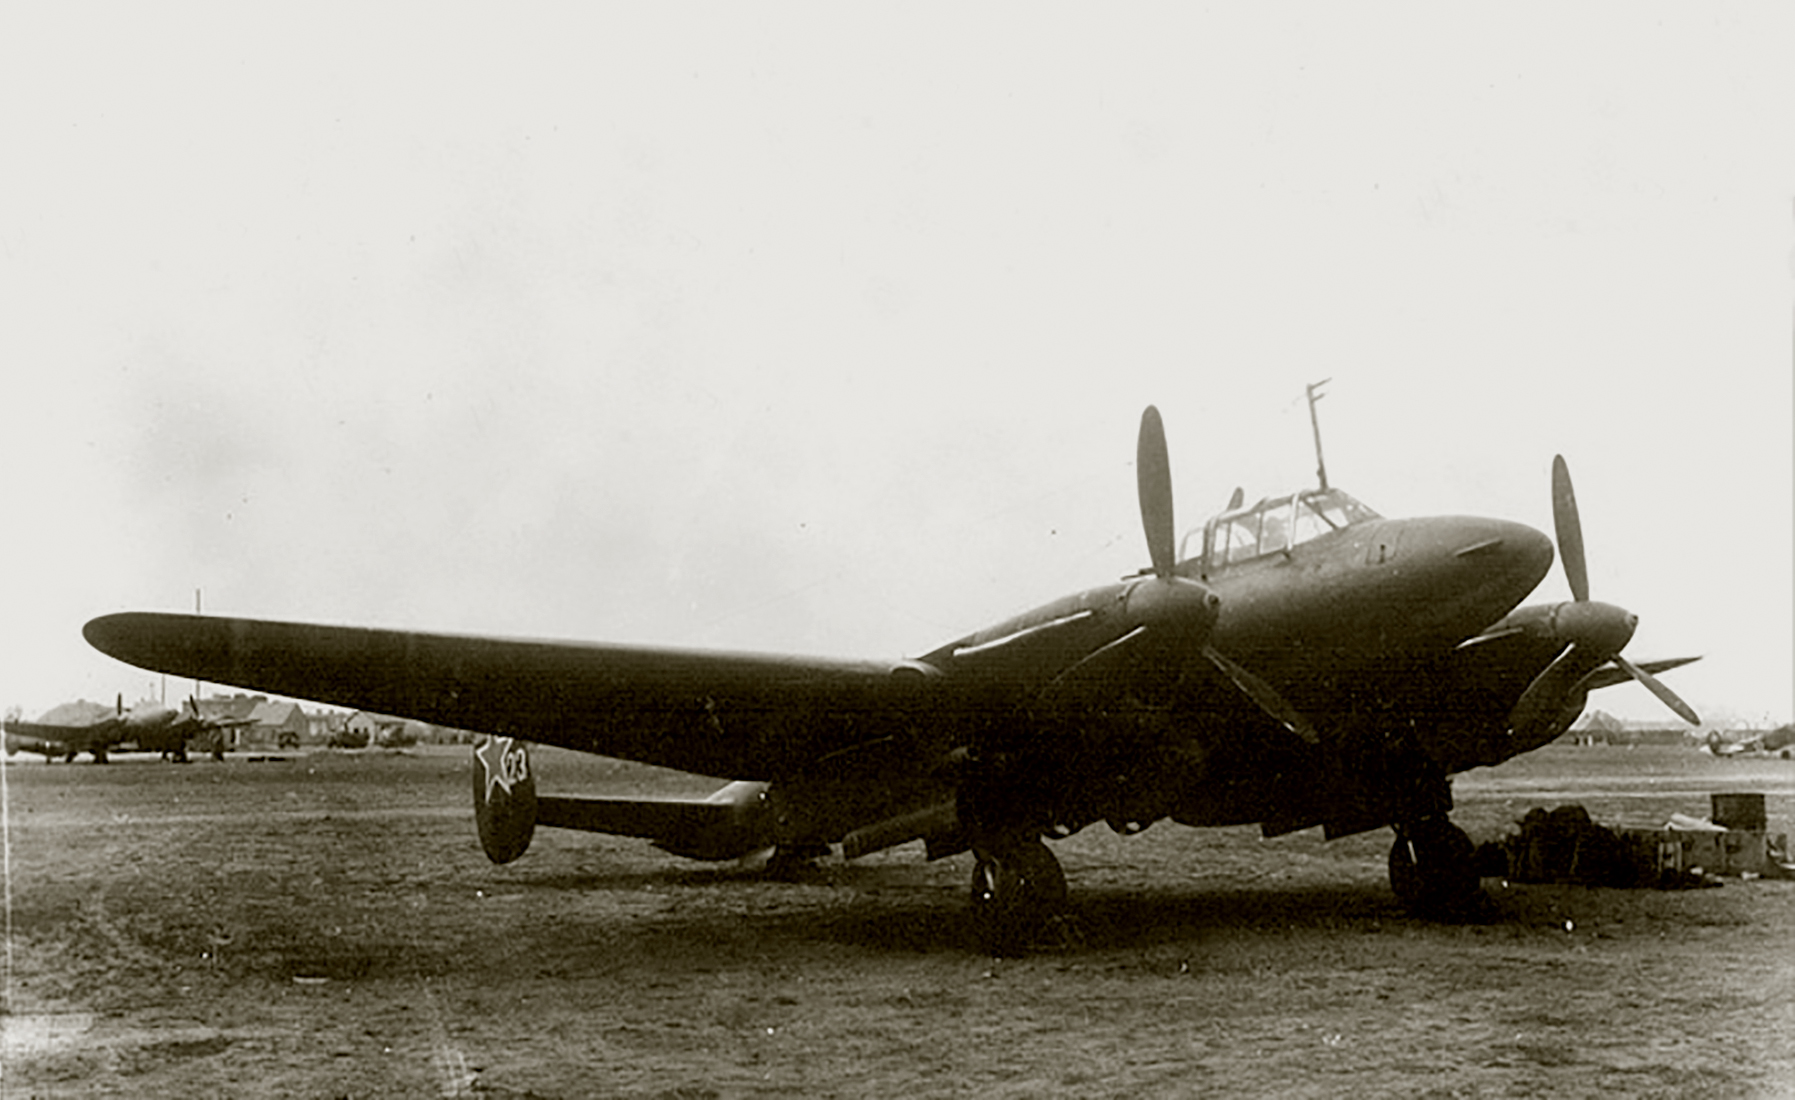 Petlyakov Pe 2 type 205 96GvBAP White 23 which participated Battle of Kursk 1943 02